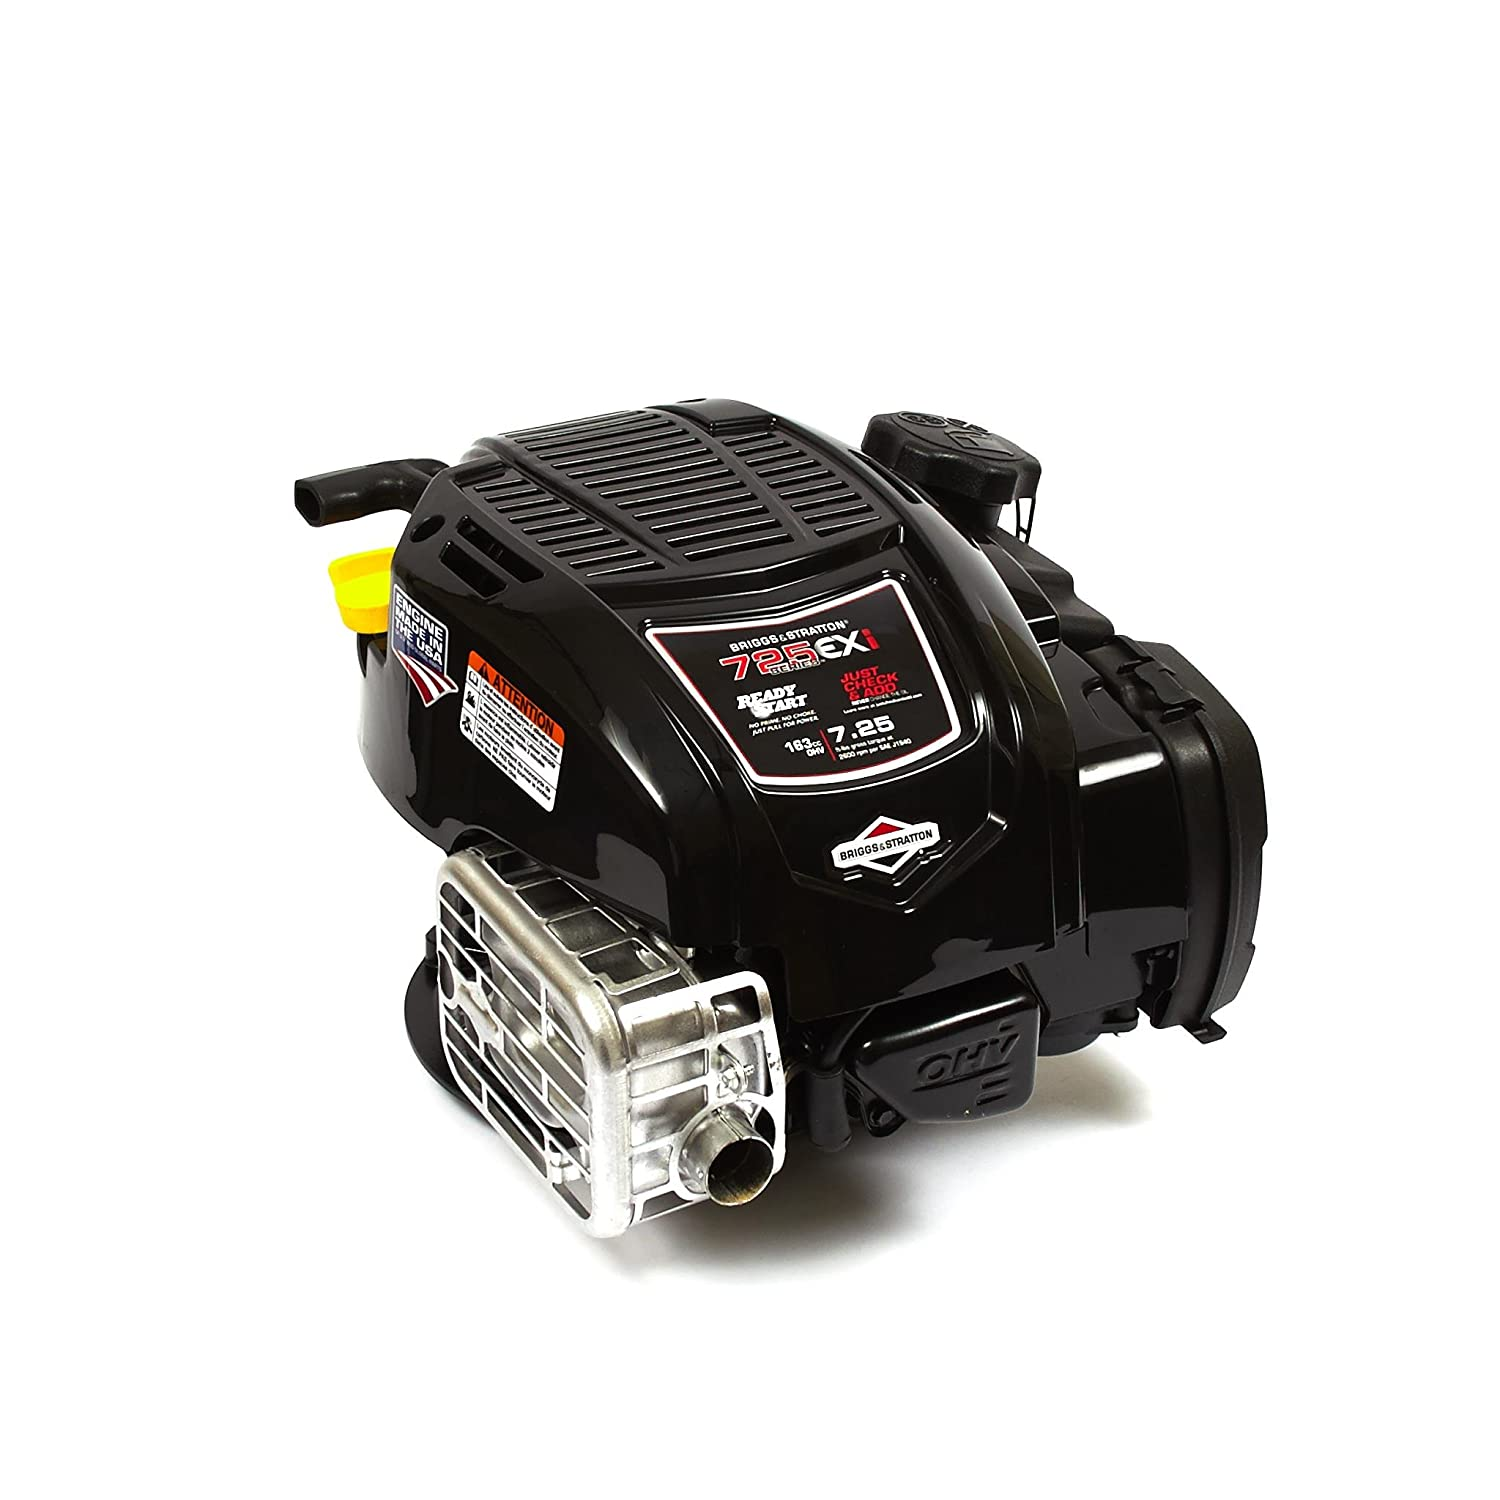 Briggs and Stratton 104M02-0020-F1 163cc 725Exi Series Push Mower Engine